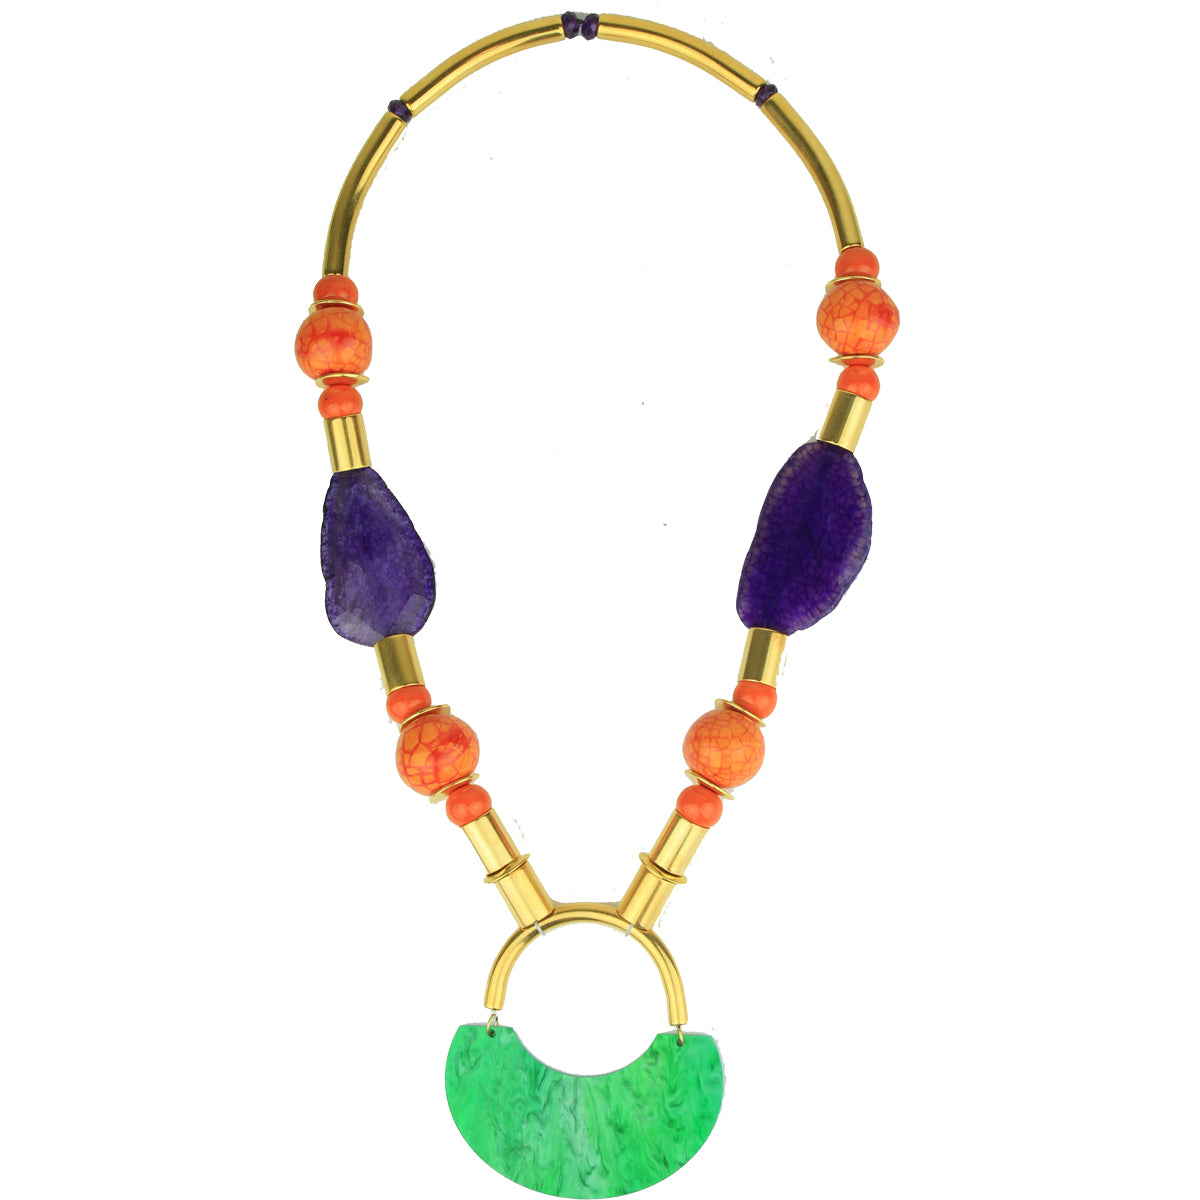 Aura Semiprecious Stones Necklace with Metal Tubes and Ceramic Beads